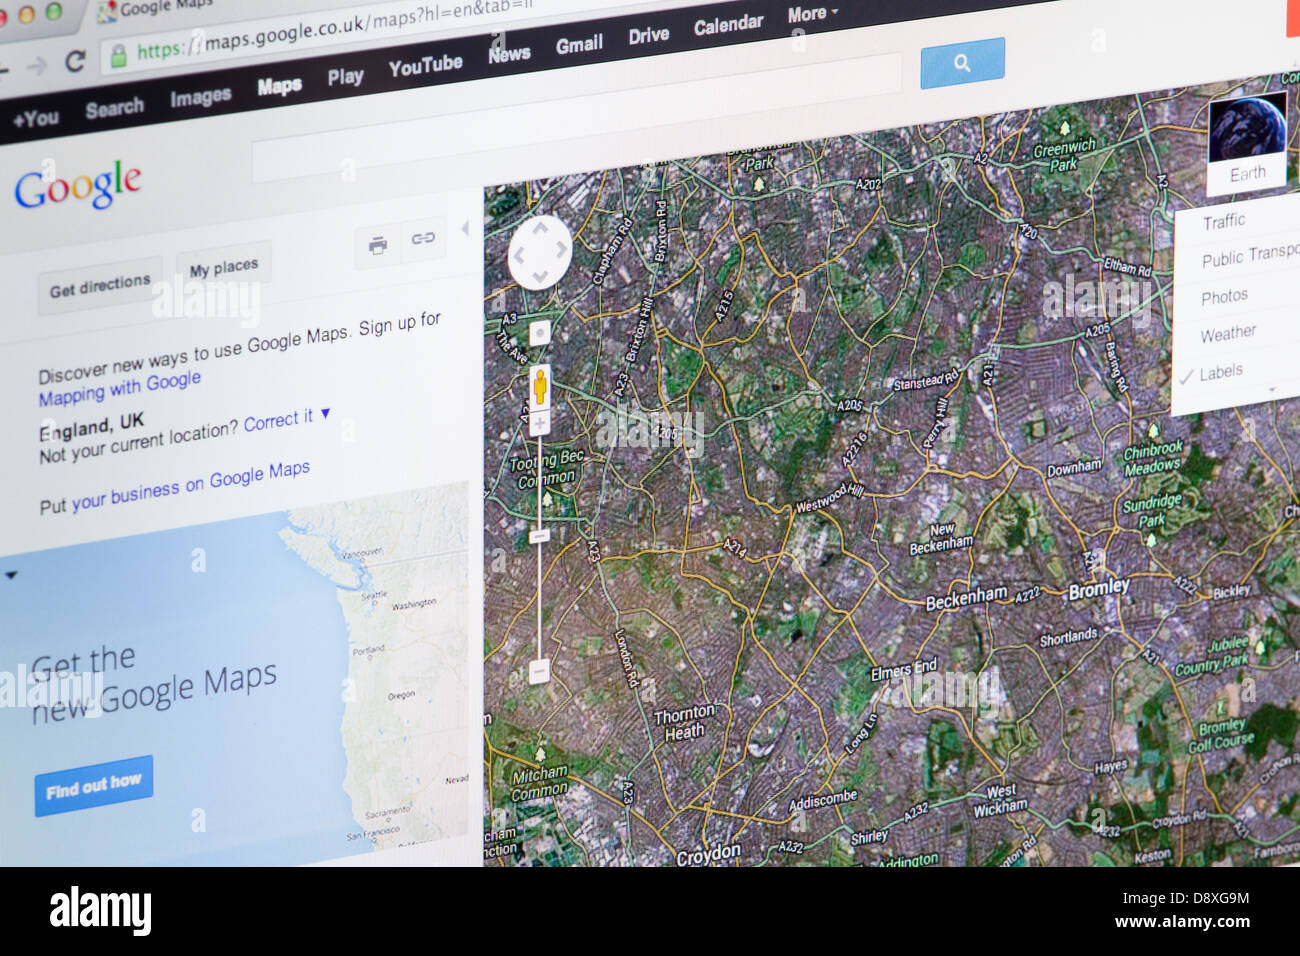 Google Maps Satellite View Mapping Website or web page on a laptop screen or computer monitor - Stock Image